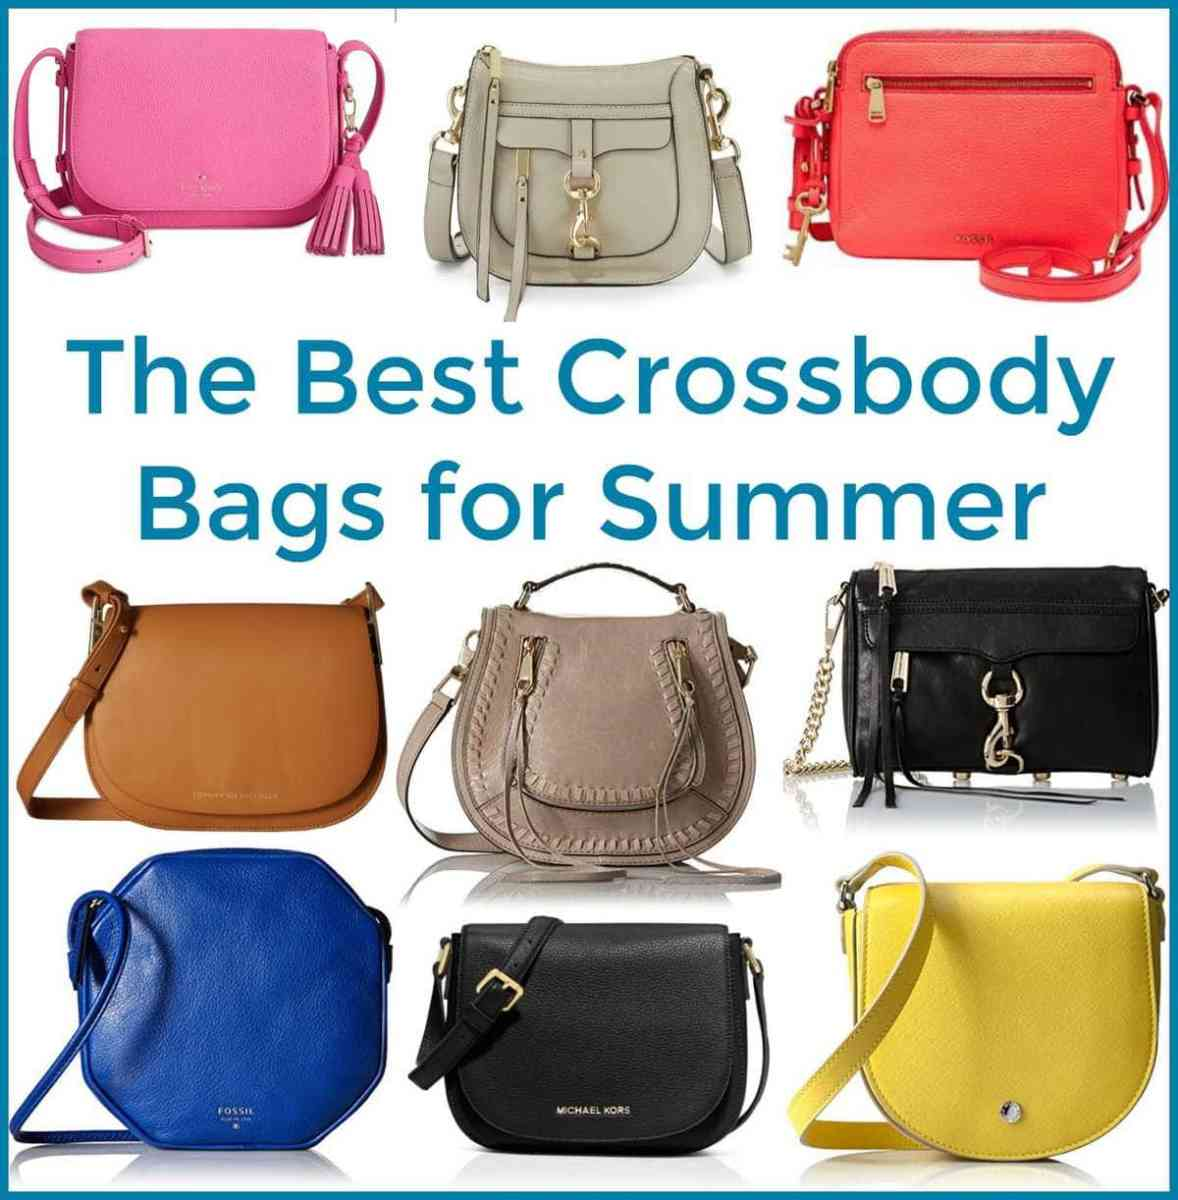 Best Crossbody Bags for Summer